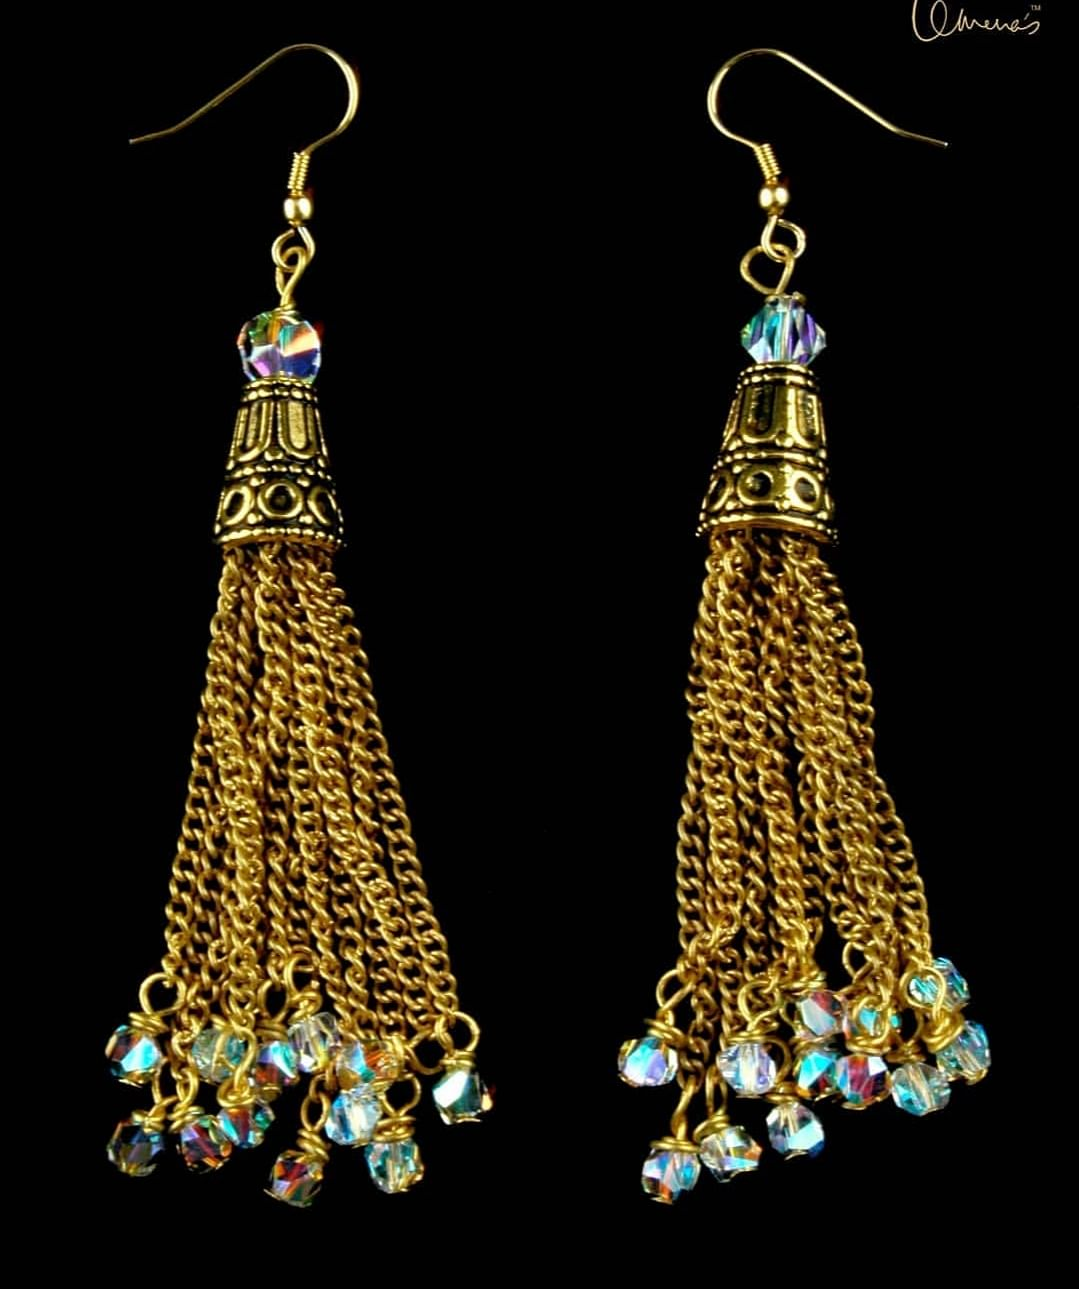 DIva-licious! Tassels made with Swarovski Crystals